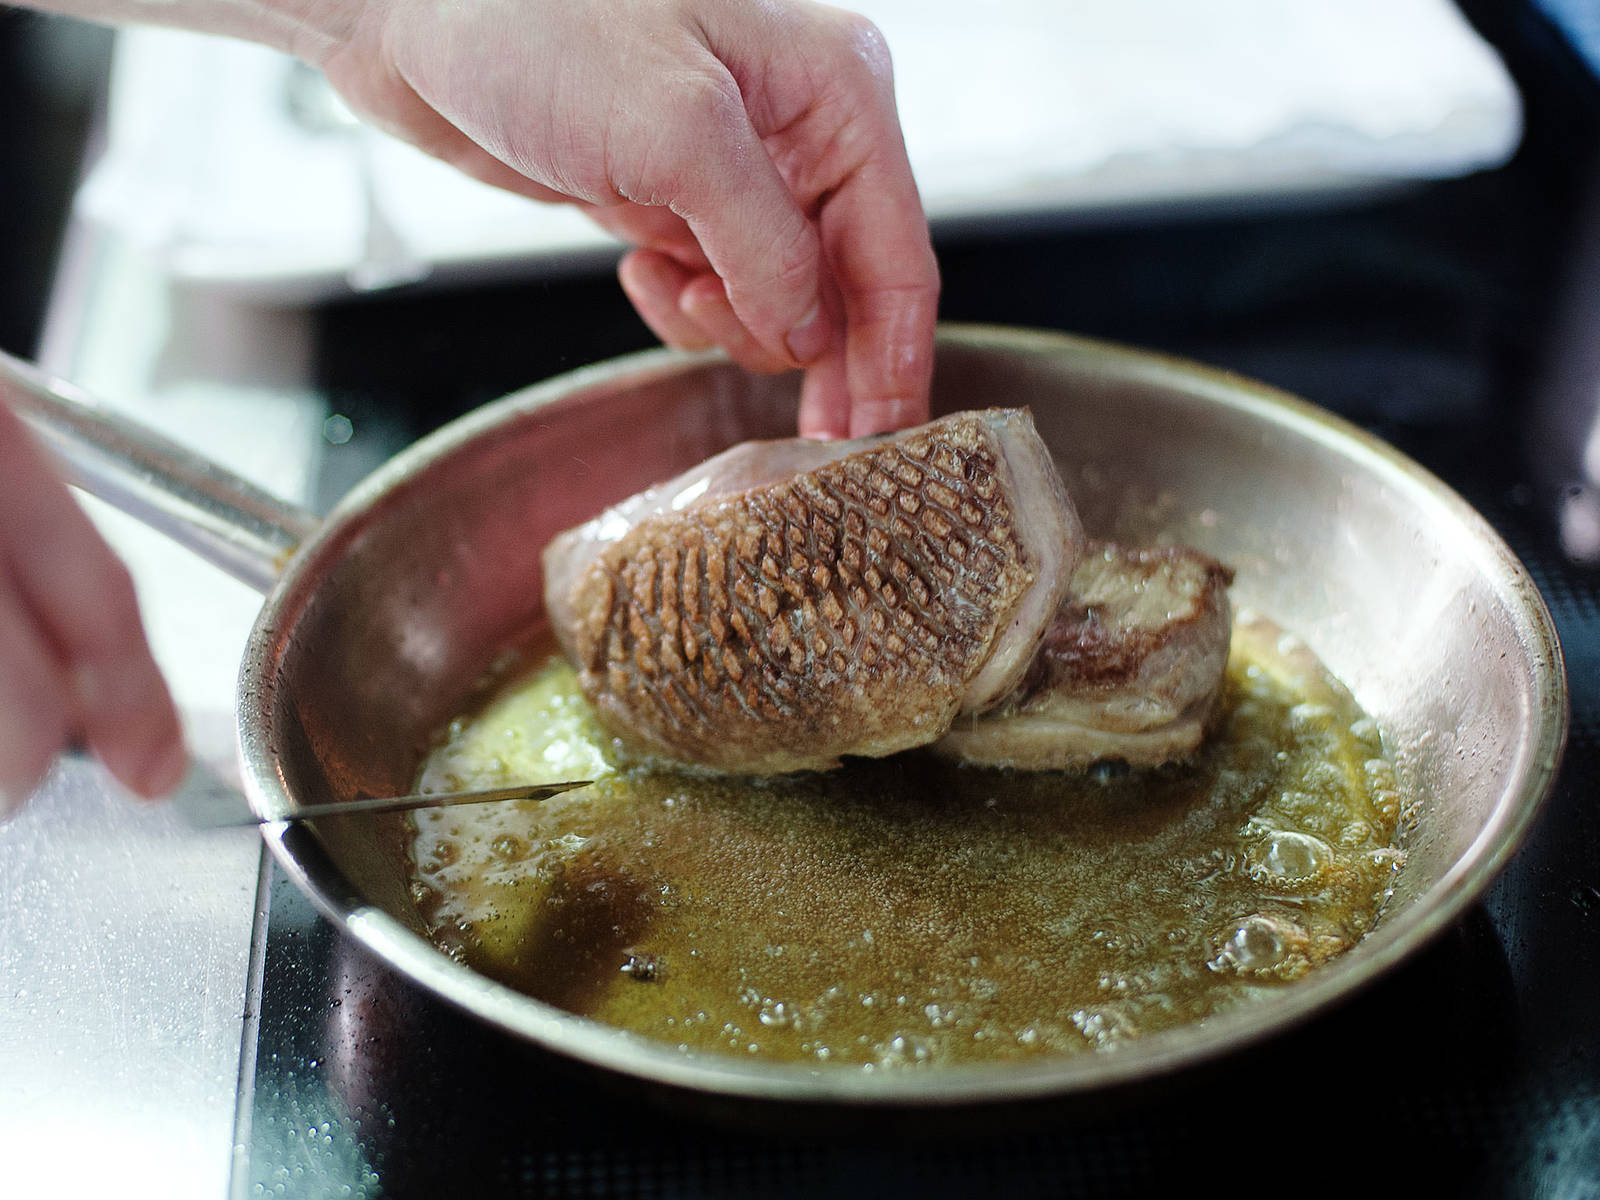 Heat oil in a frying pan set over medium-high heat. Sear duck breast. Spoon hot oil over the skin, then flip duck breast. Remove from frying pan and let oil drain from meat.